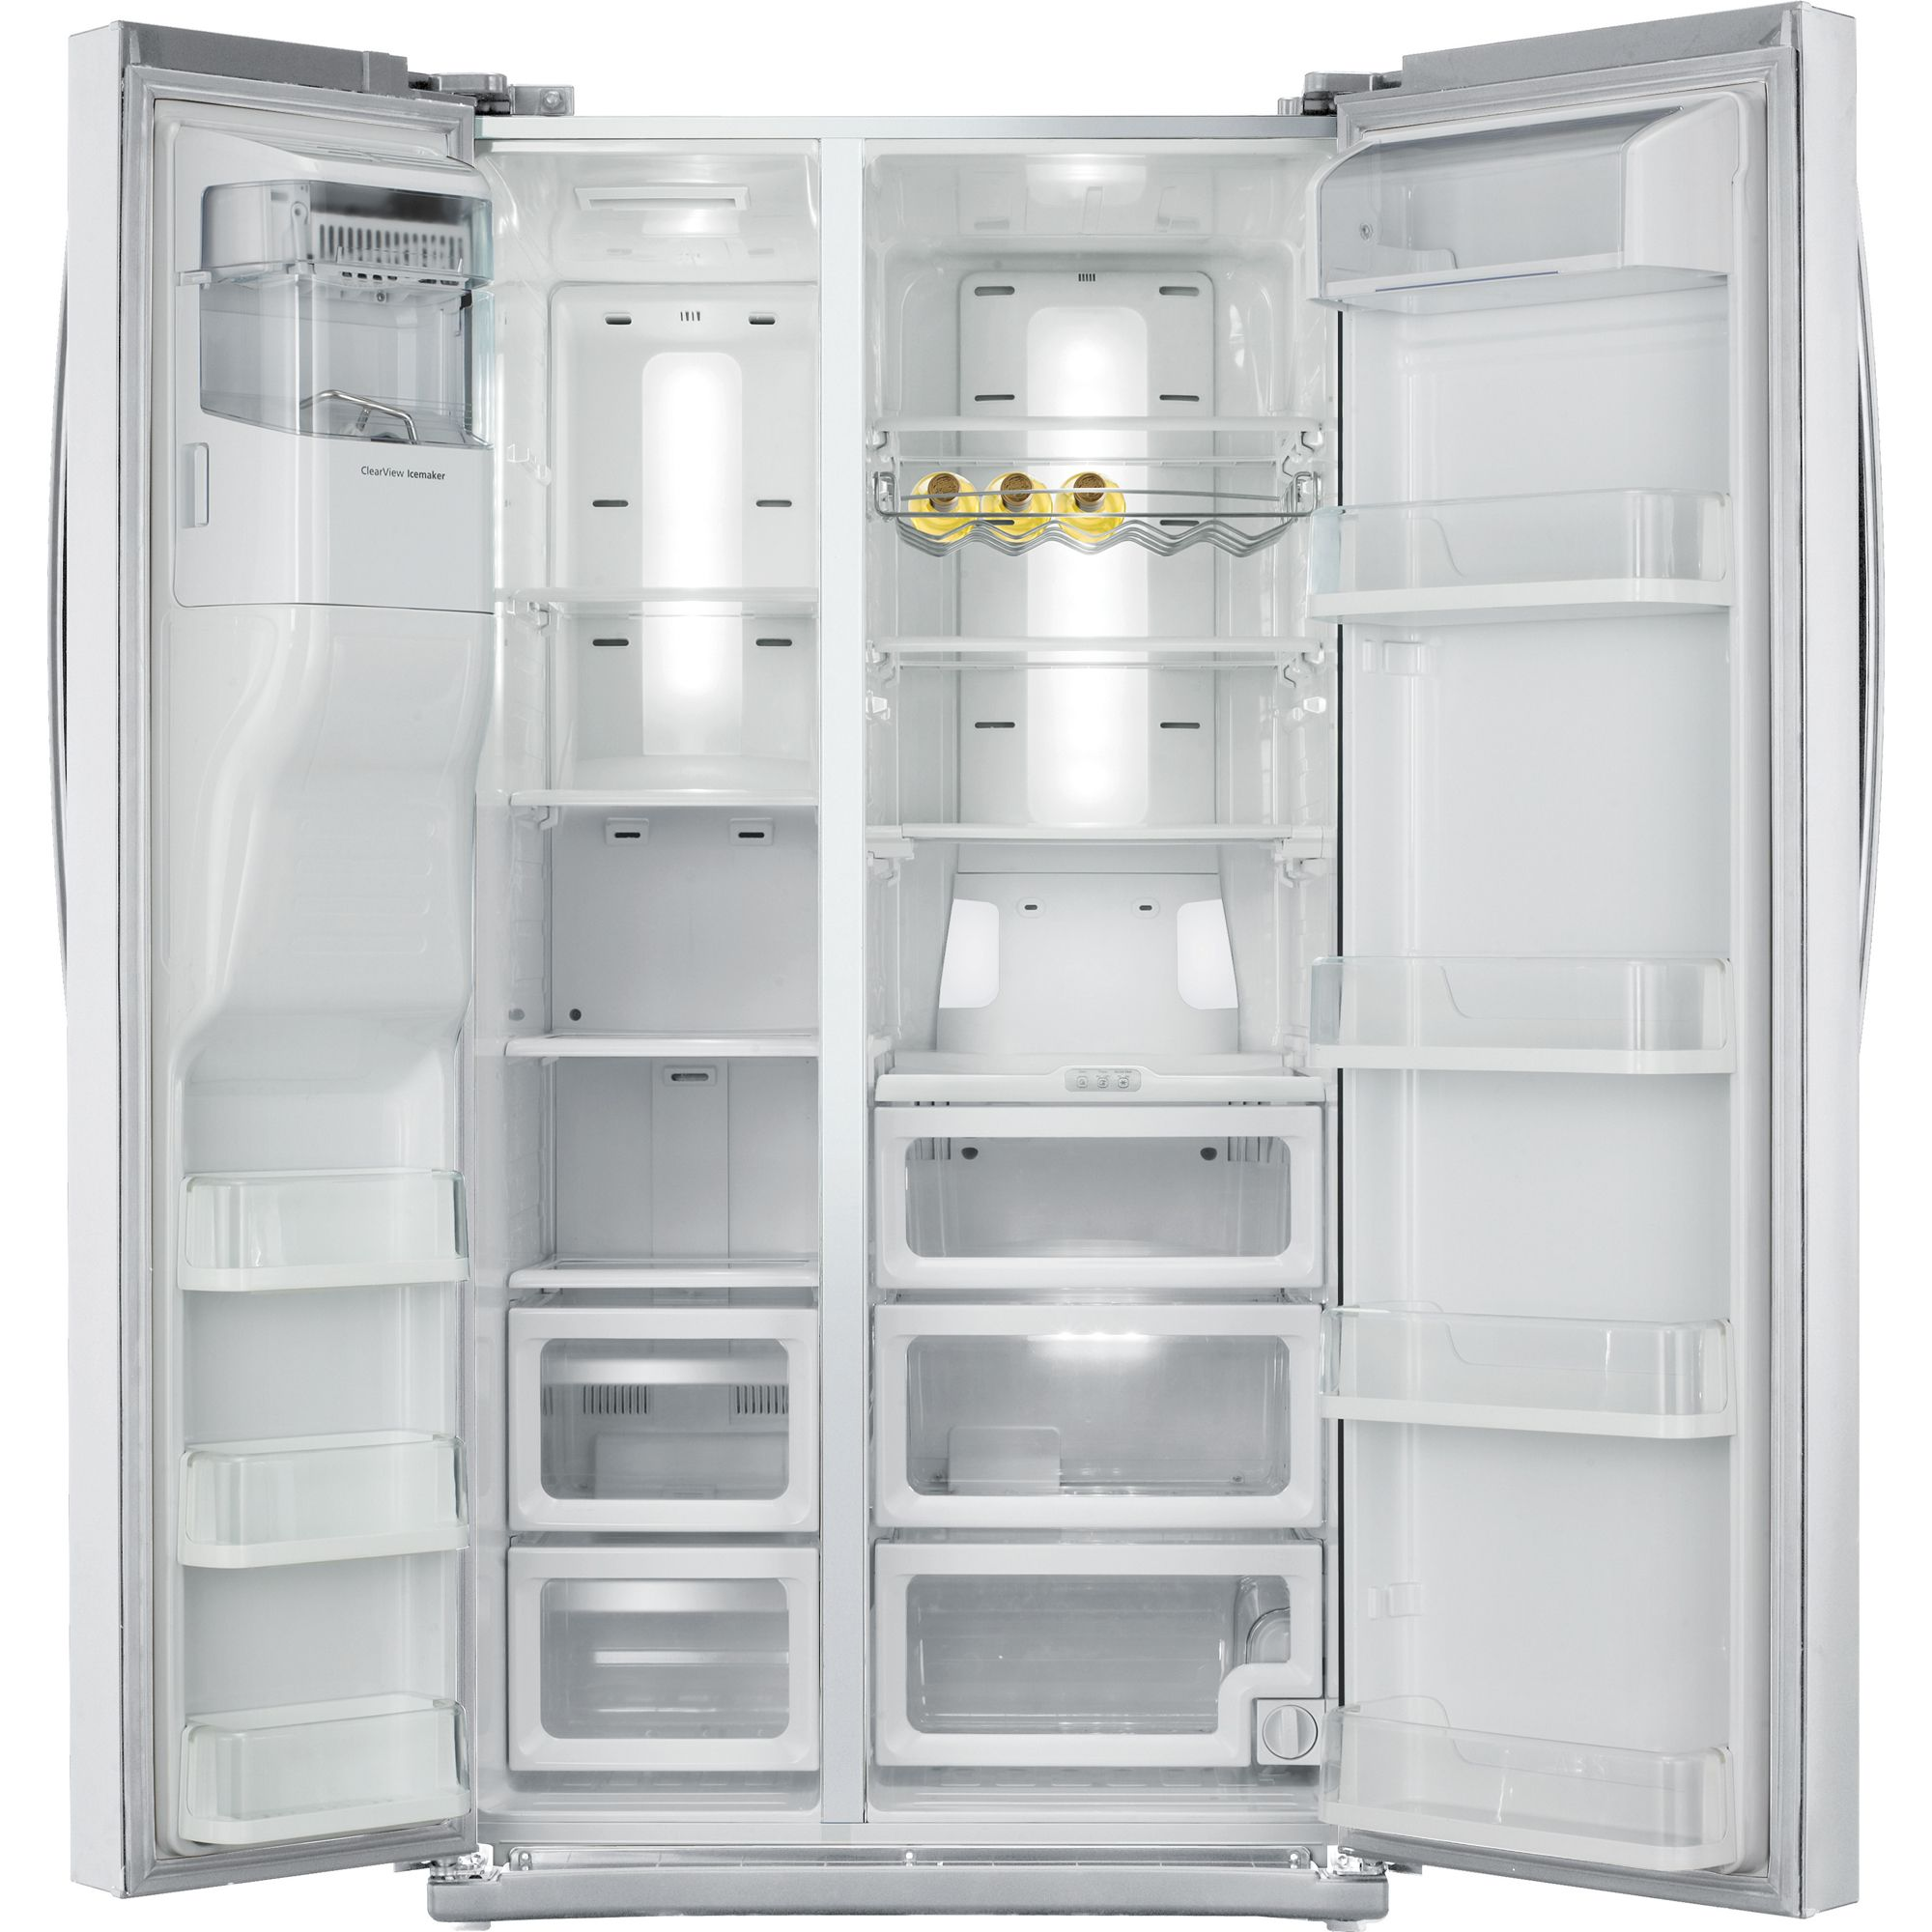 Samsung 25.5 cu. ft. Side-by-Side Refrigerator-White